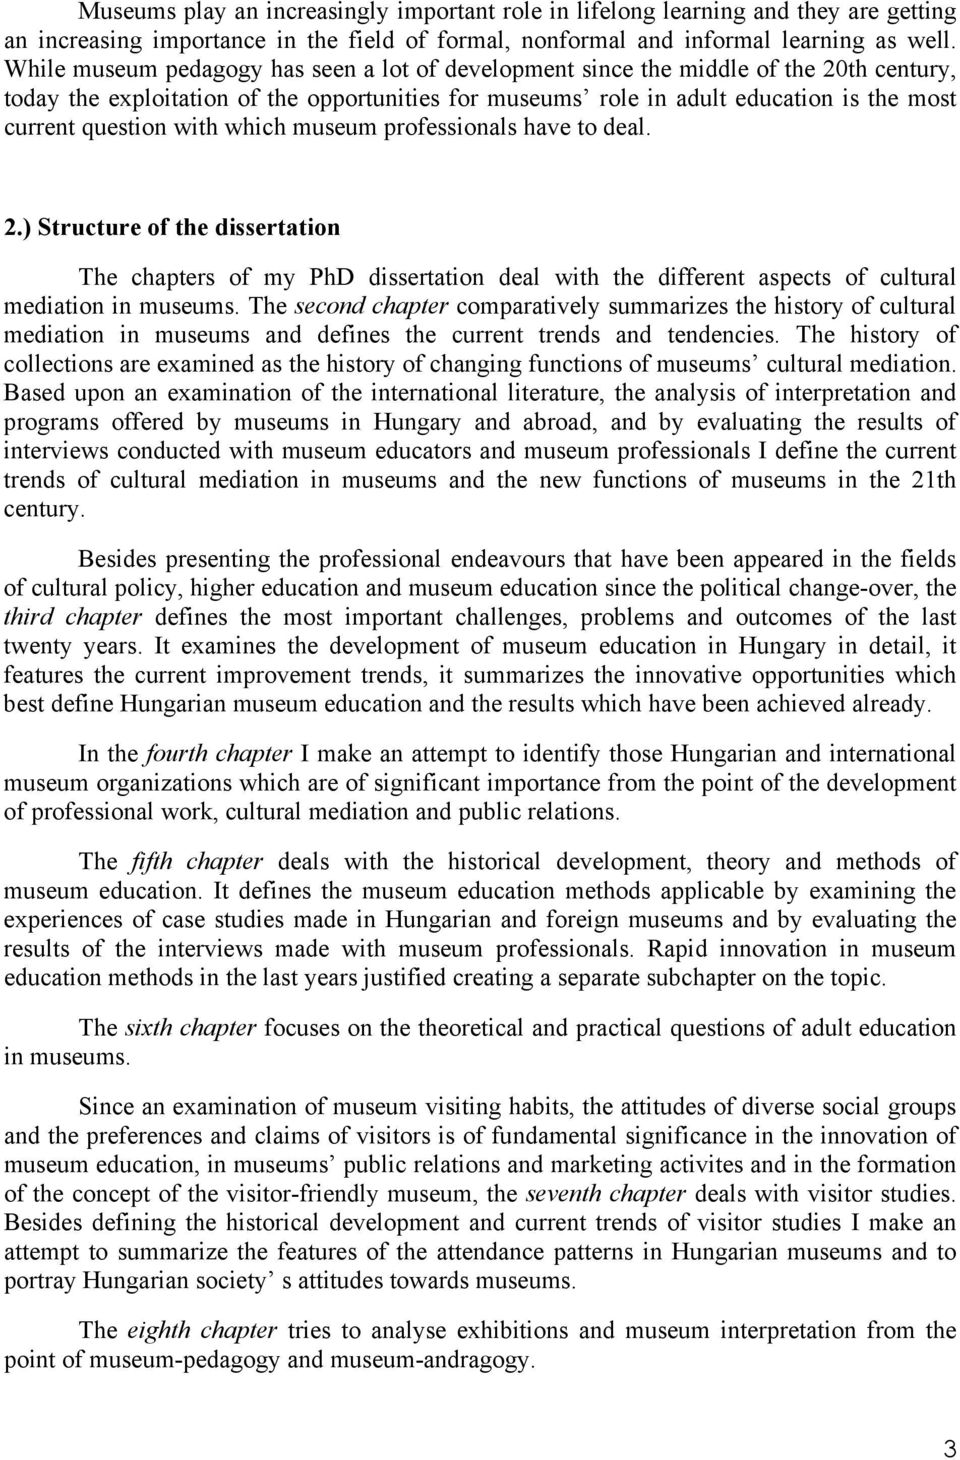 Statement Of Purpose For Phd In Management Sciences